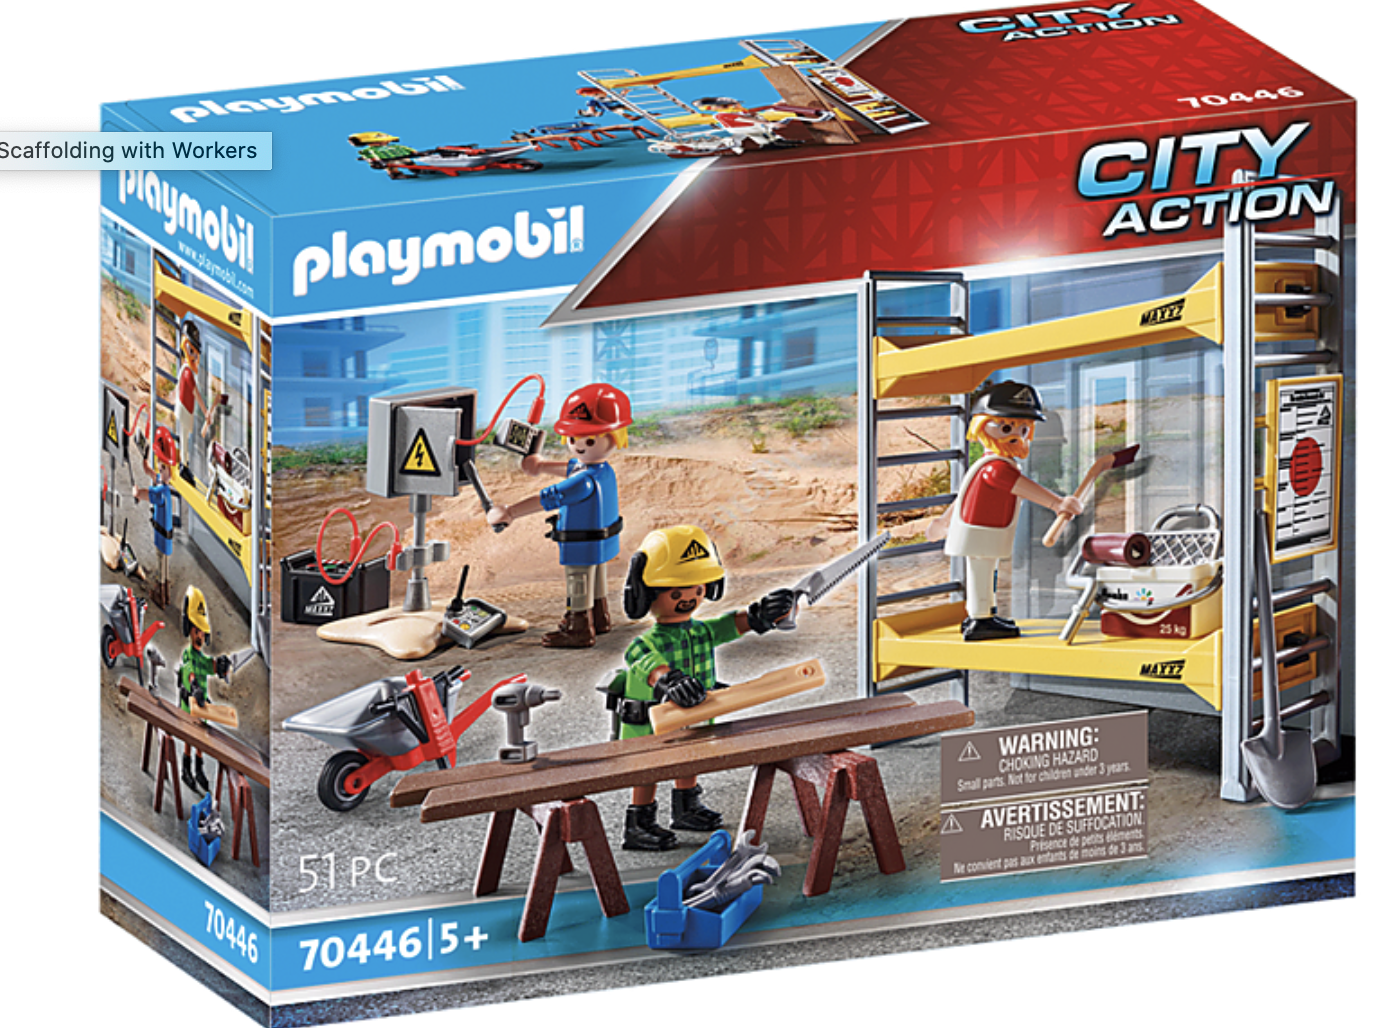 Playmobil Scaffolding with Workers